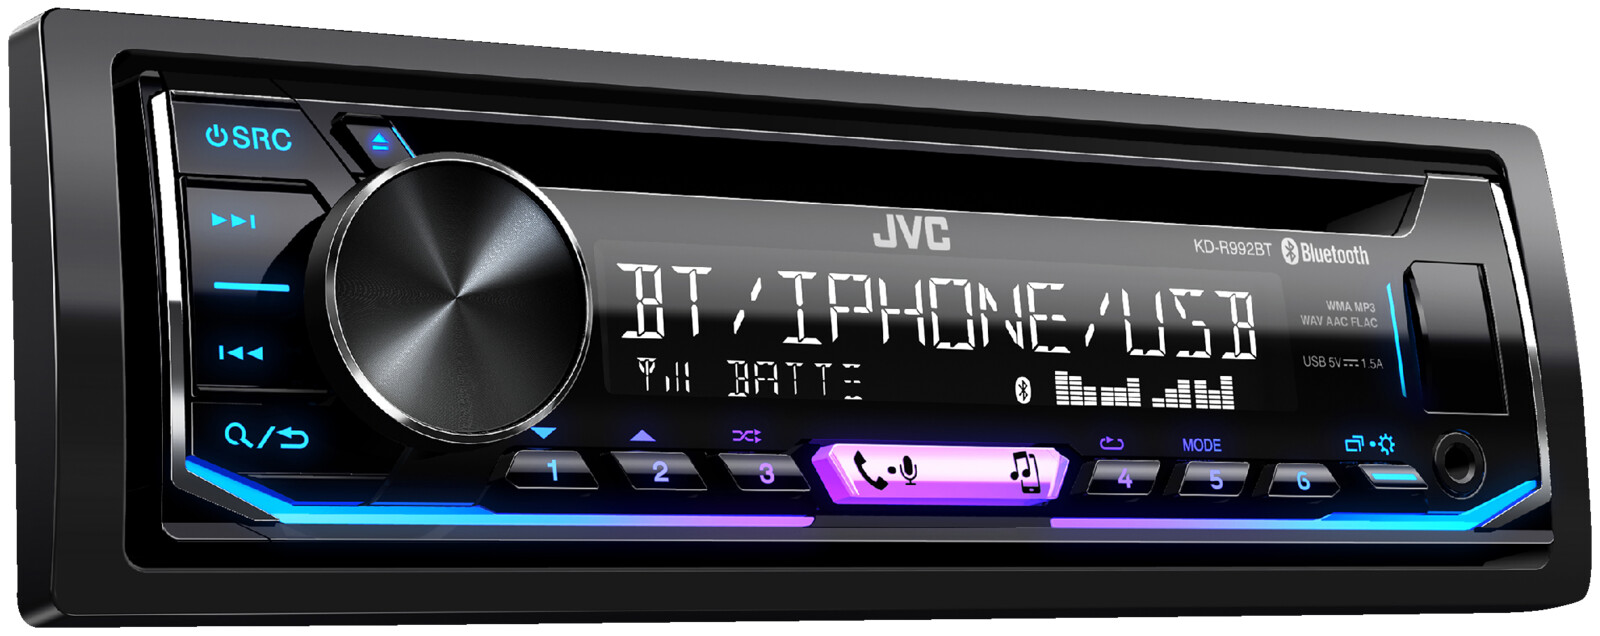 jvc kd r992bt autoradio 1 din 50 watt ebay. Black Bedroom Furniture Sets. Home Design Ideas